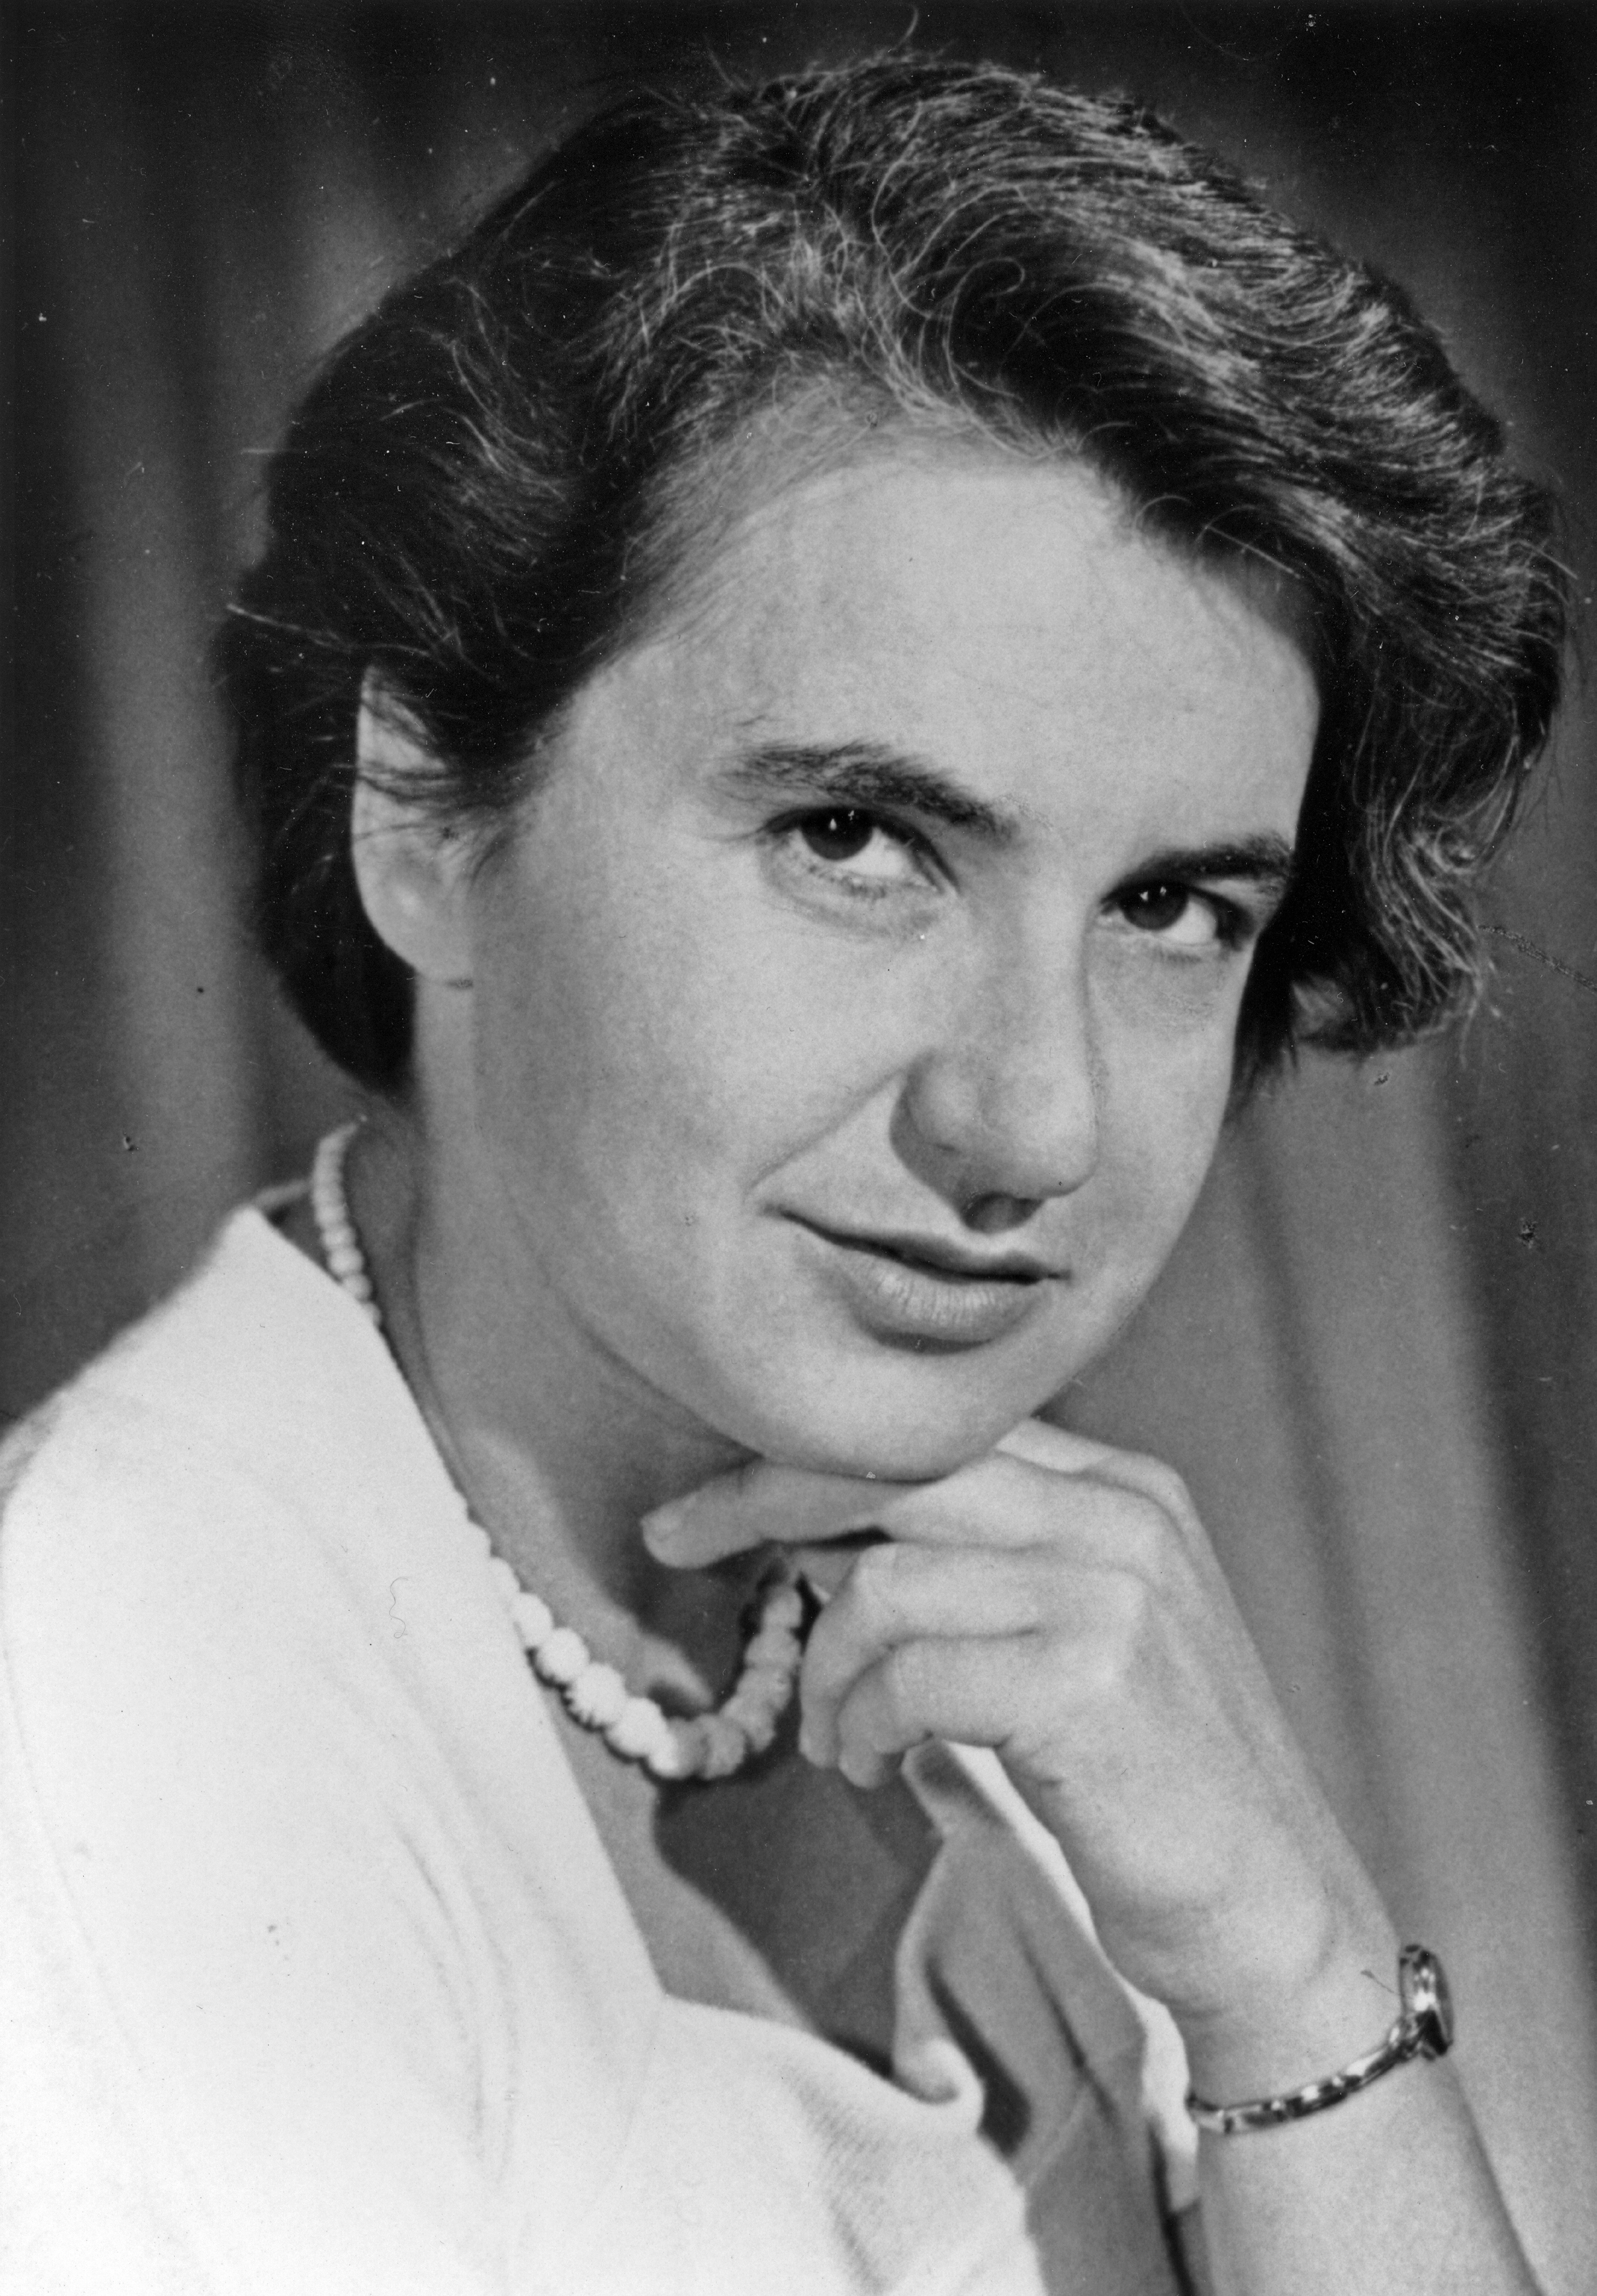 chemistry rosalind franklin Rosalind franklin died on april 16th, 1958 at the tender age of 37, but packed at least two lifetime's worth of high-quality science into her career  in her absence, the prize for chemistry.